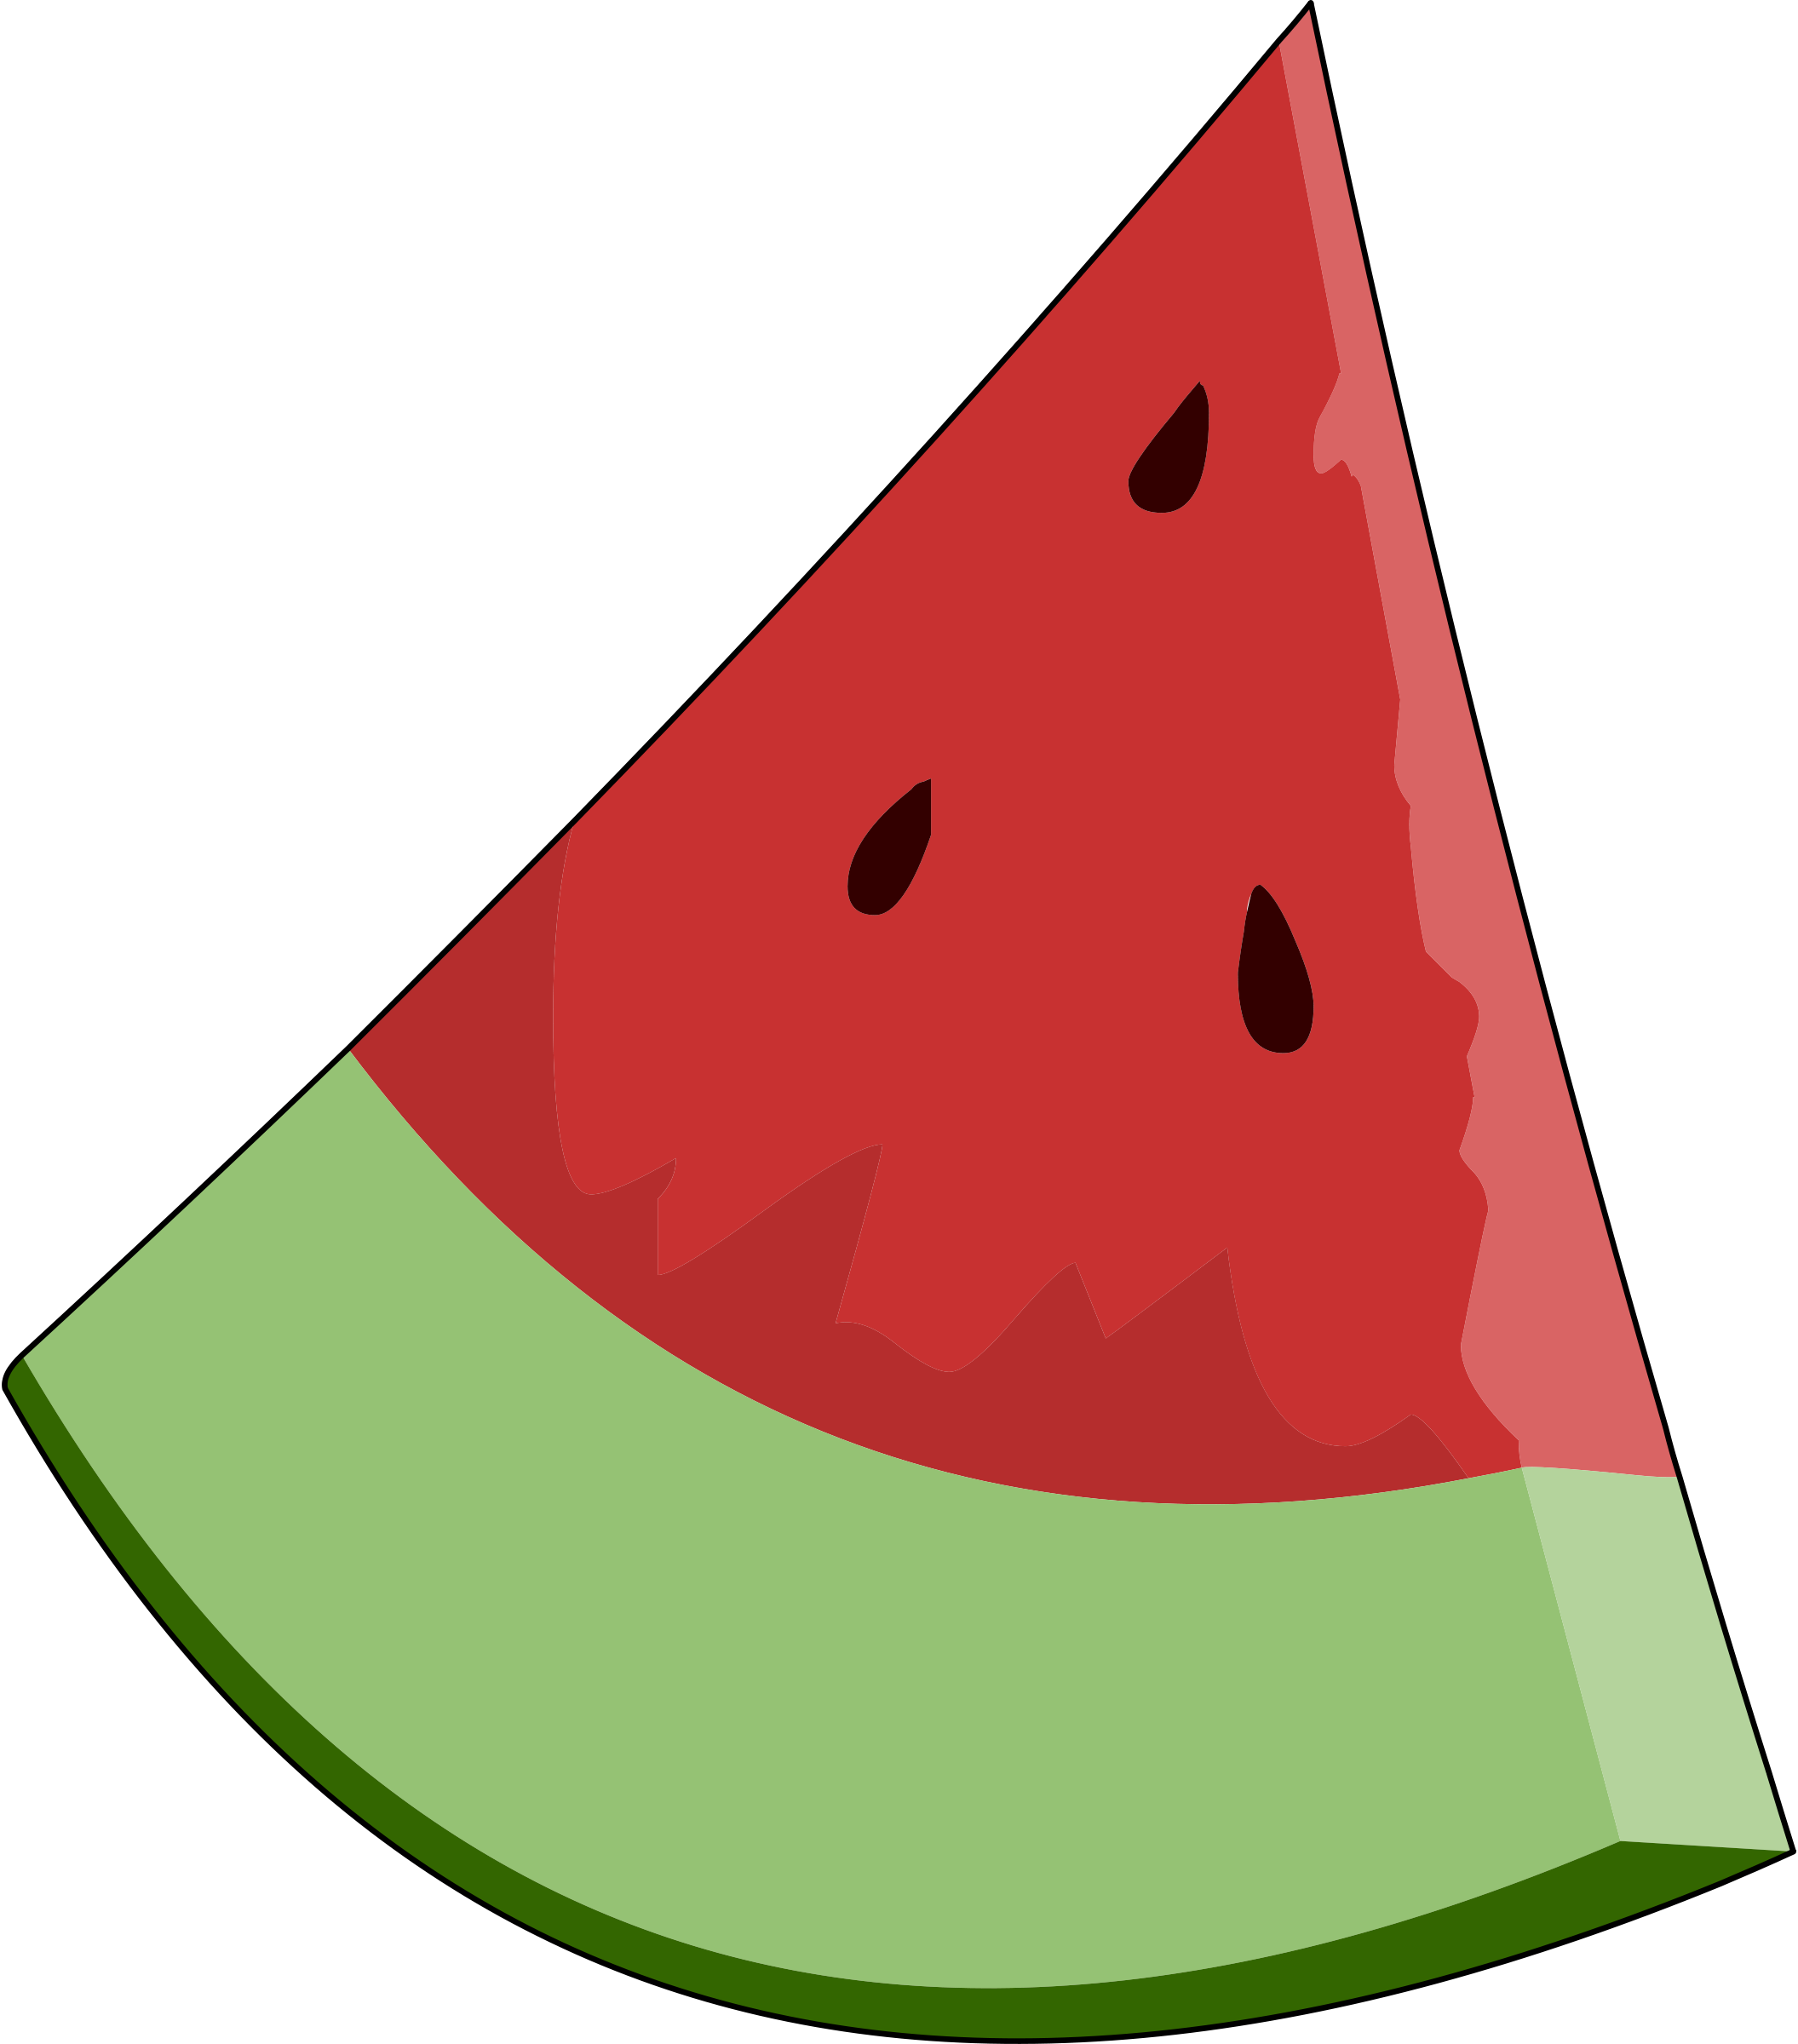 Download And Share Clipart About Clip Art Of A Watermelon Clipart Cliparts For You Clipartcow Food Clipart With Transparent Background Find More High Quality